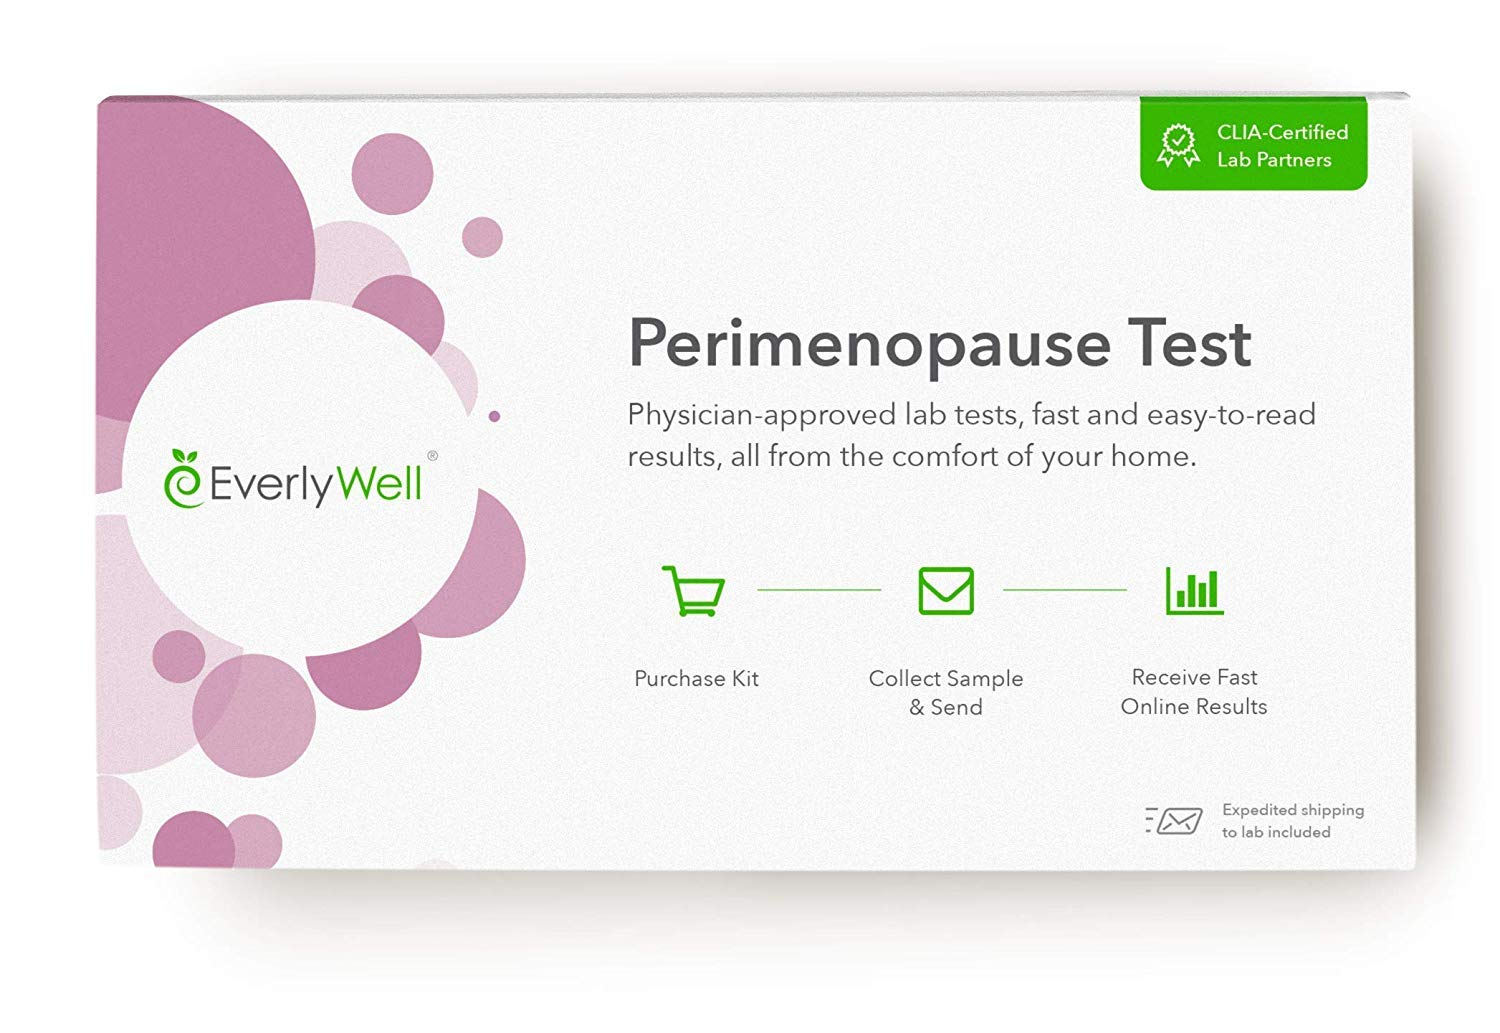 EverlyWell - at-Home Perimenopause Tests - Check in with Key Hormones Levels That May Be Changing as You Age (Not Available in RI, MD, NY, NJ) by Everly Well